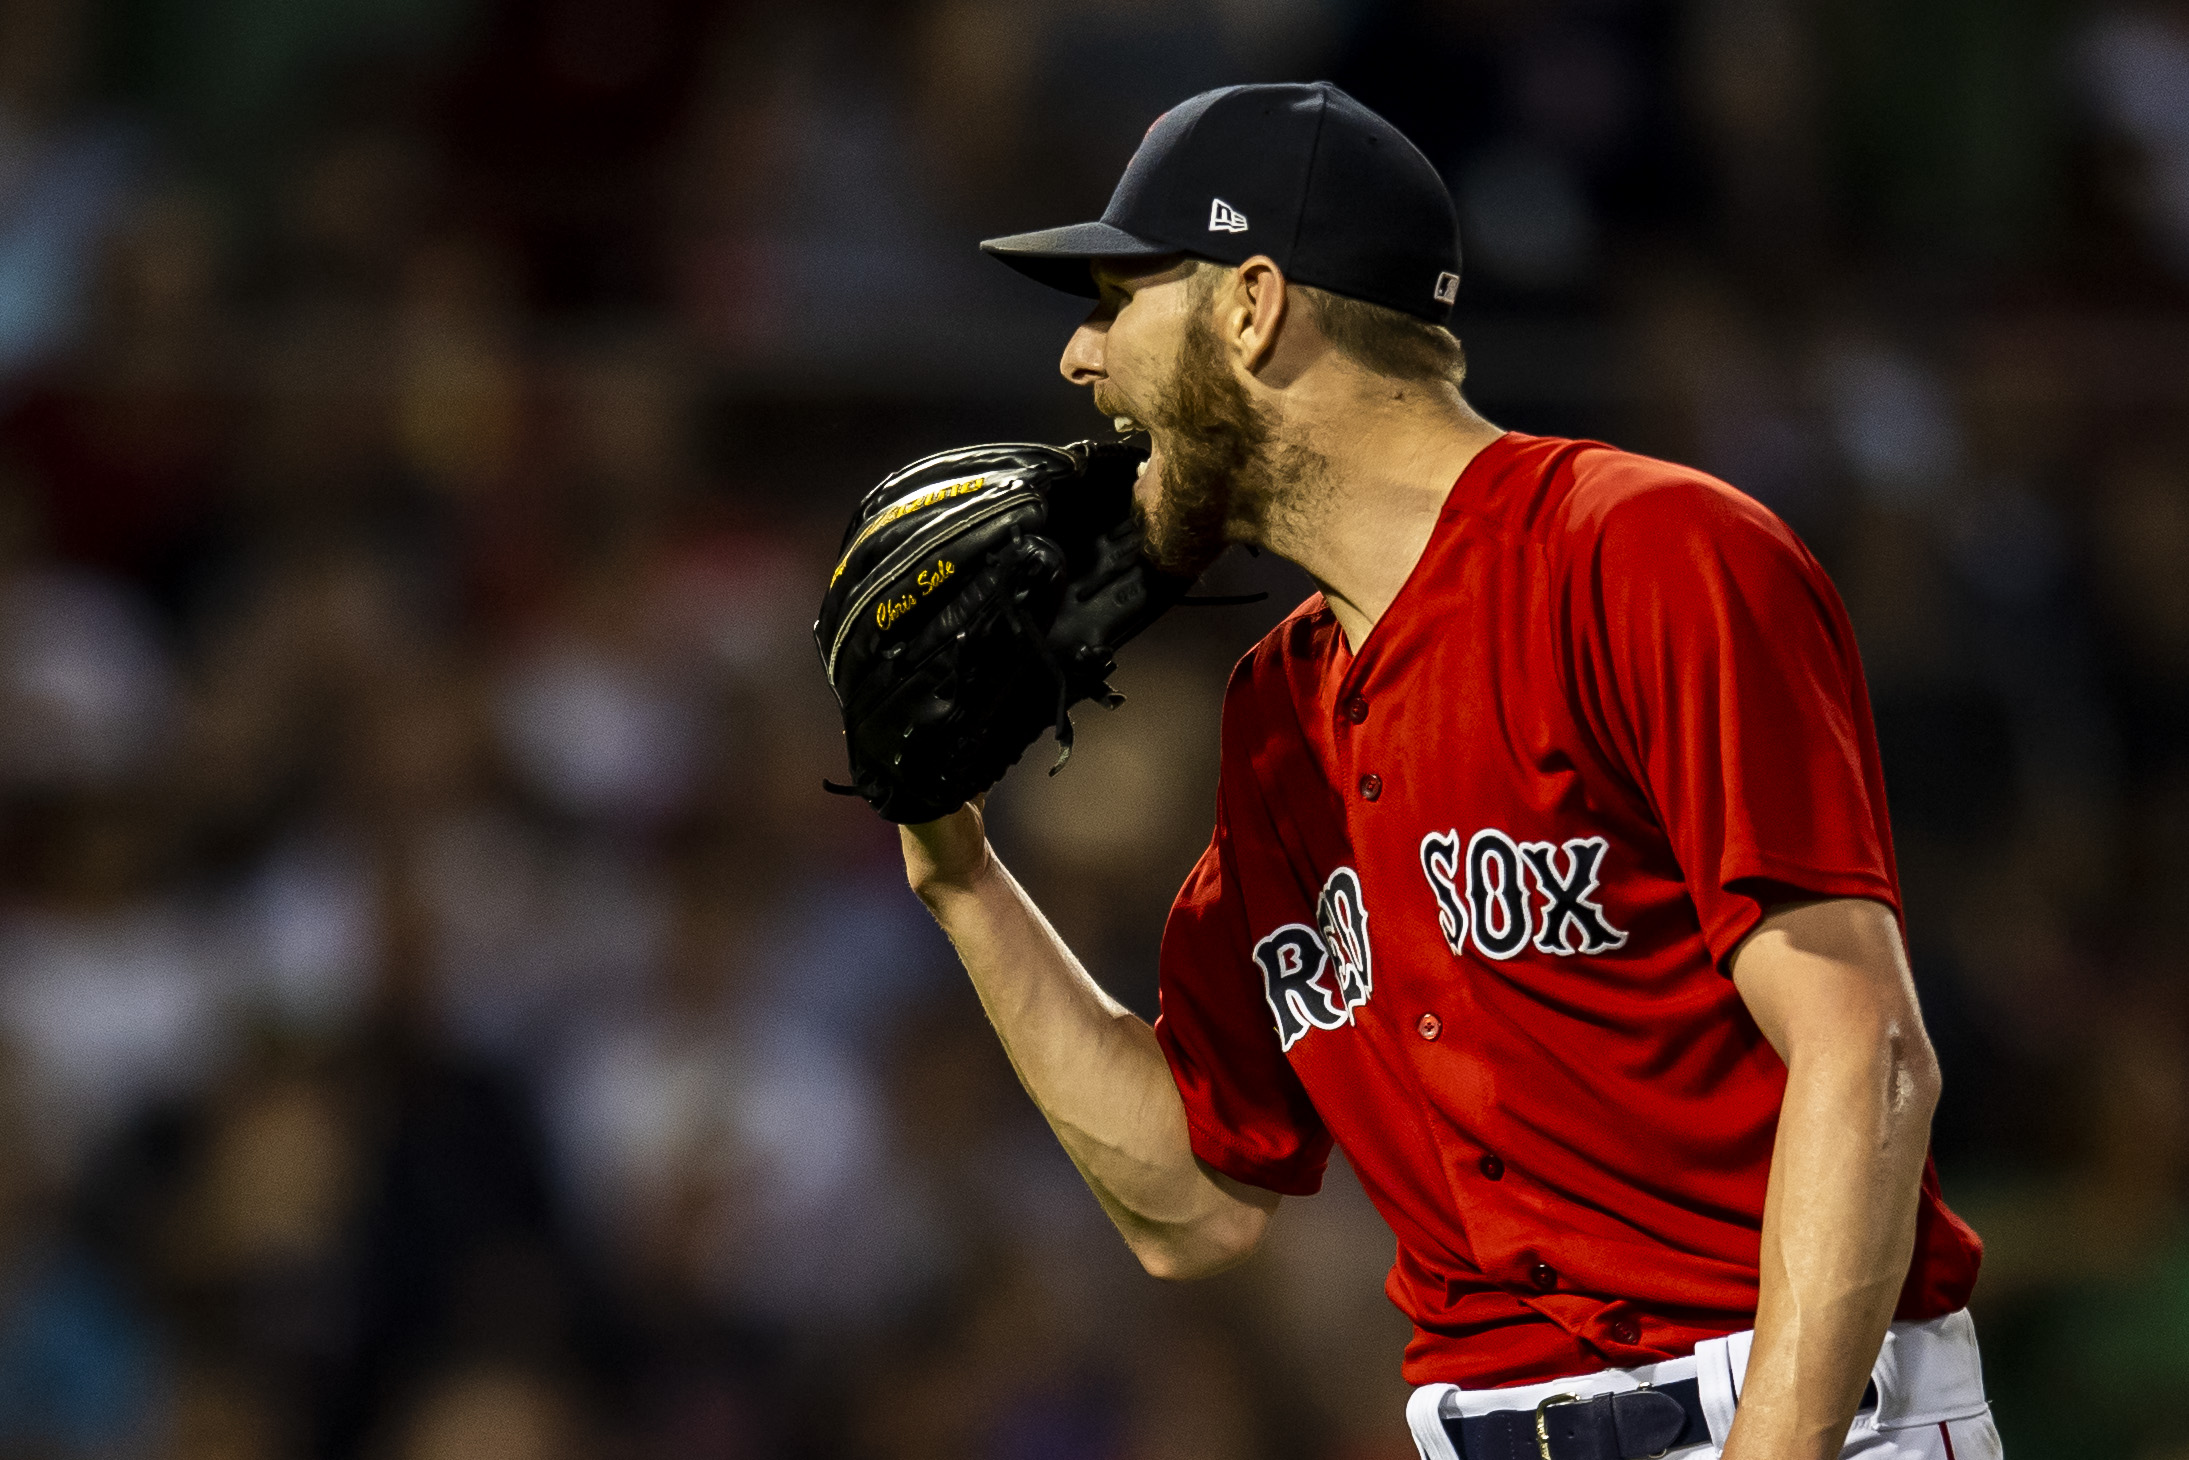 July 26, 2018, Boston, MA: Boston Red Sox pitcher Chris Sale screams into his glove as the Boston Red Sox face the Minnesota Twins at Fenway Park in Boston, Massachusetts on Friday, July 27, 2018. (Photo by Matthew Thomas/Boston Red Sox)